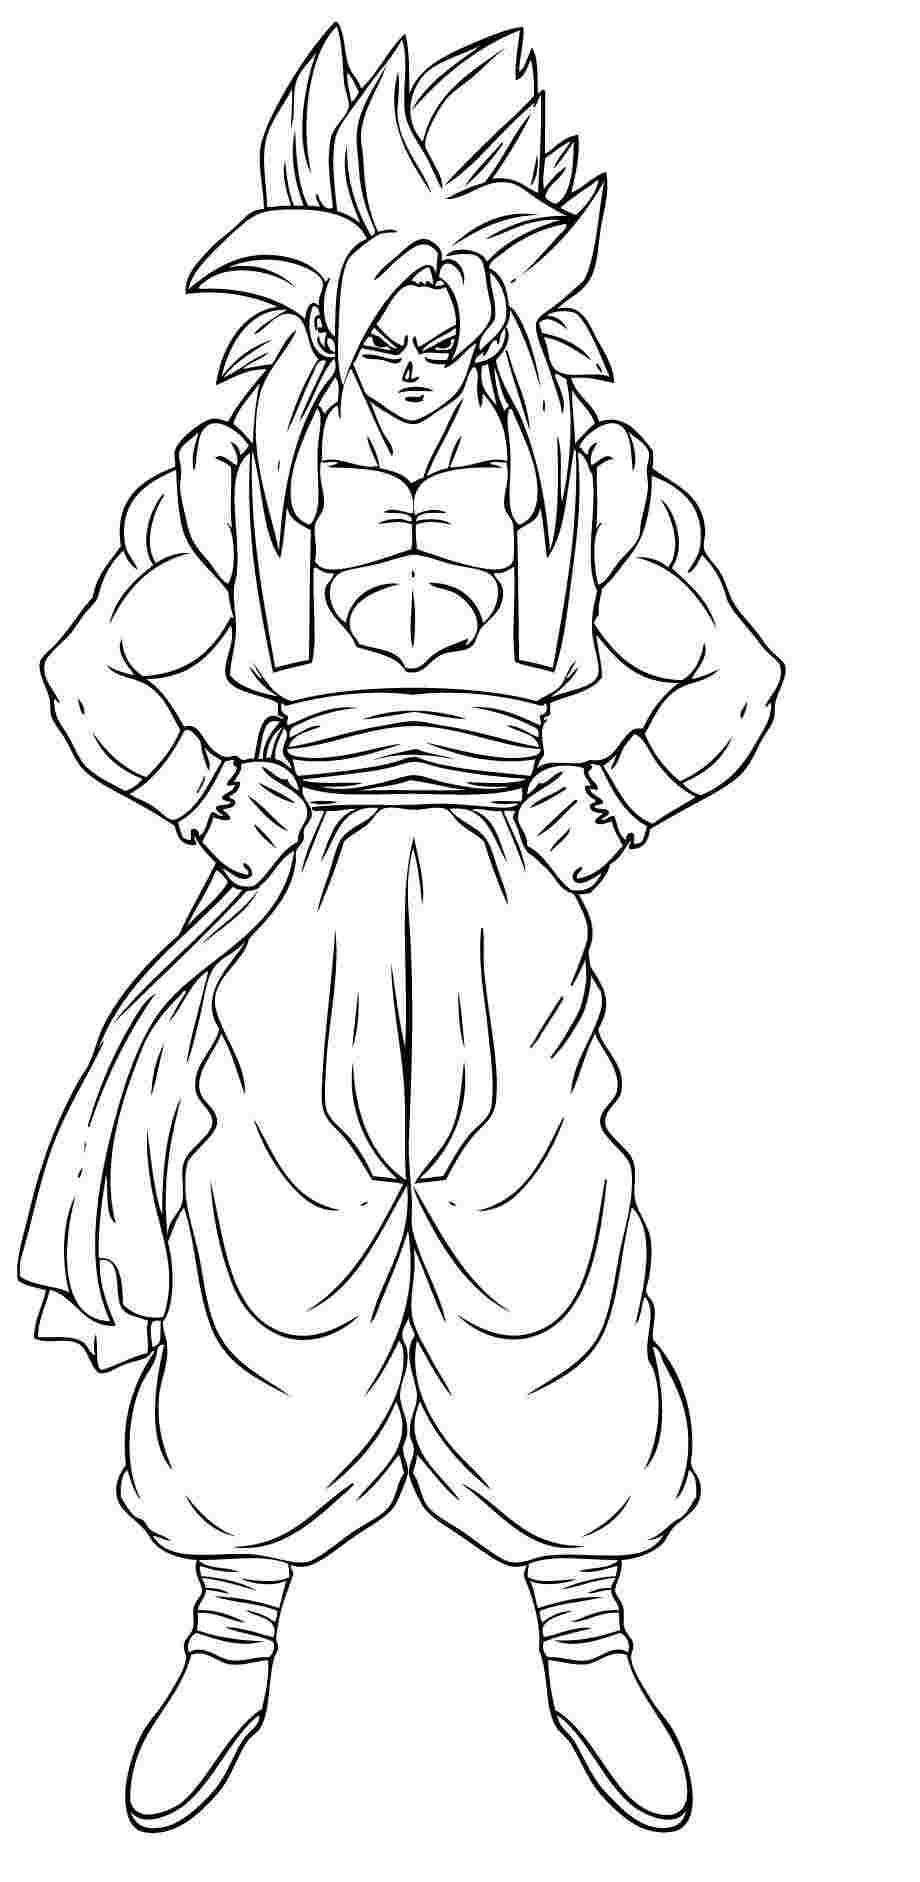 goku super saiyan coloring pages cute goku super saiyan 2form in dragon ball z coloring super coloring saiyan goku pages